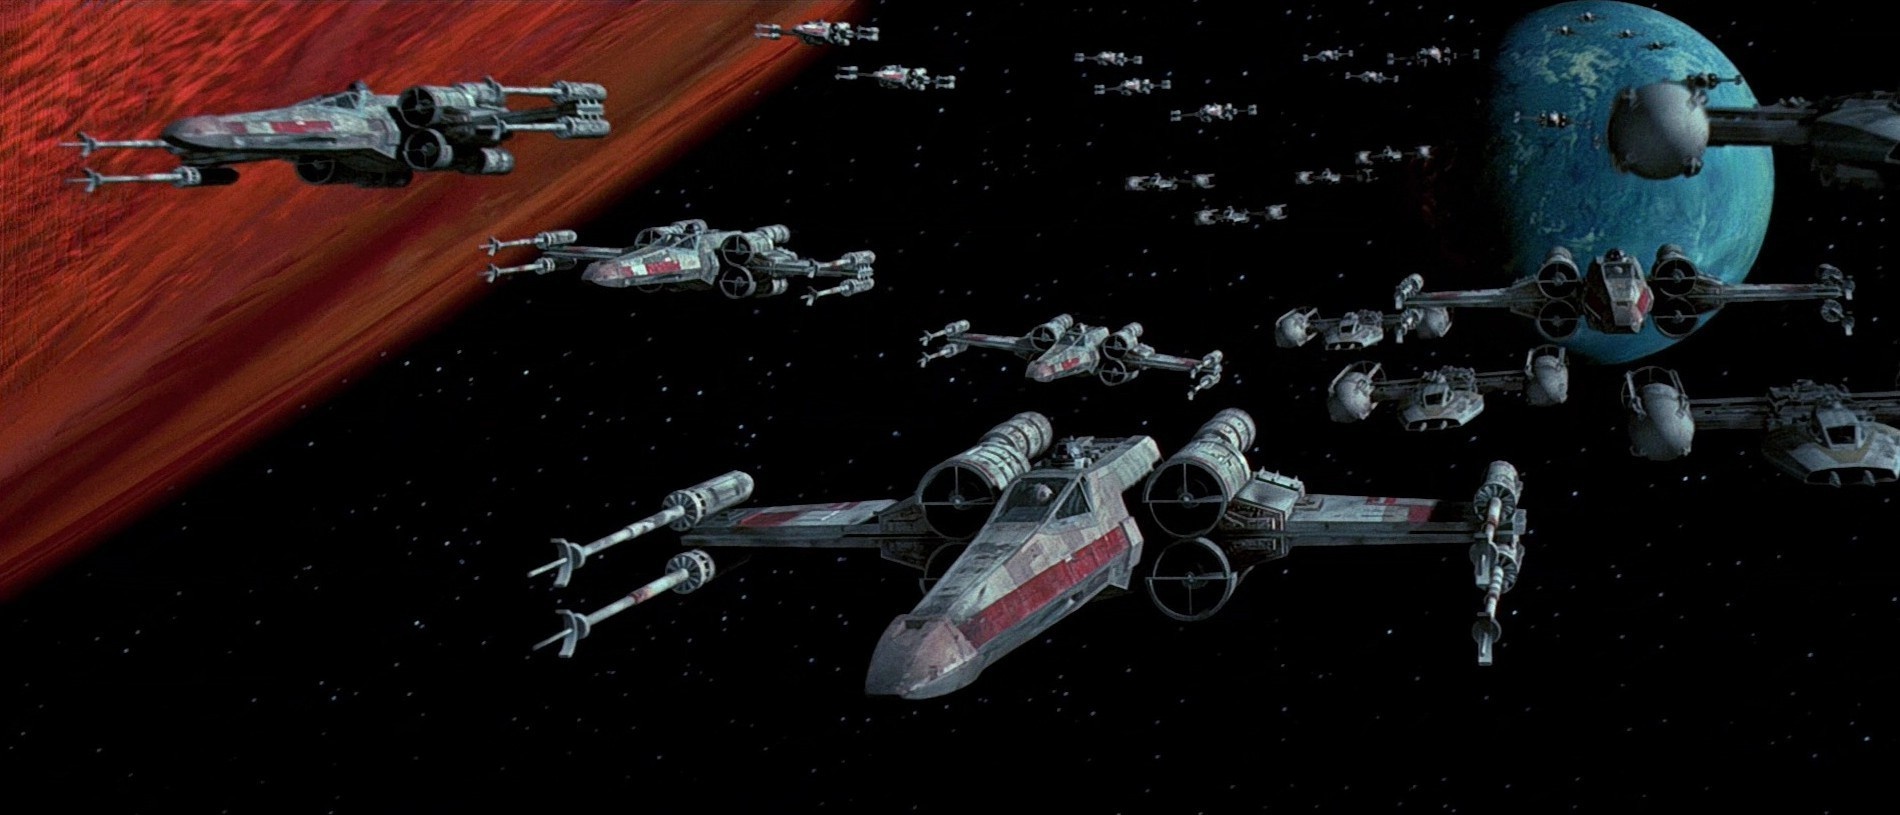 Star Wars Outer Space Movies X Wing Y Wallpaper